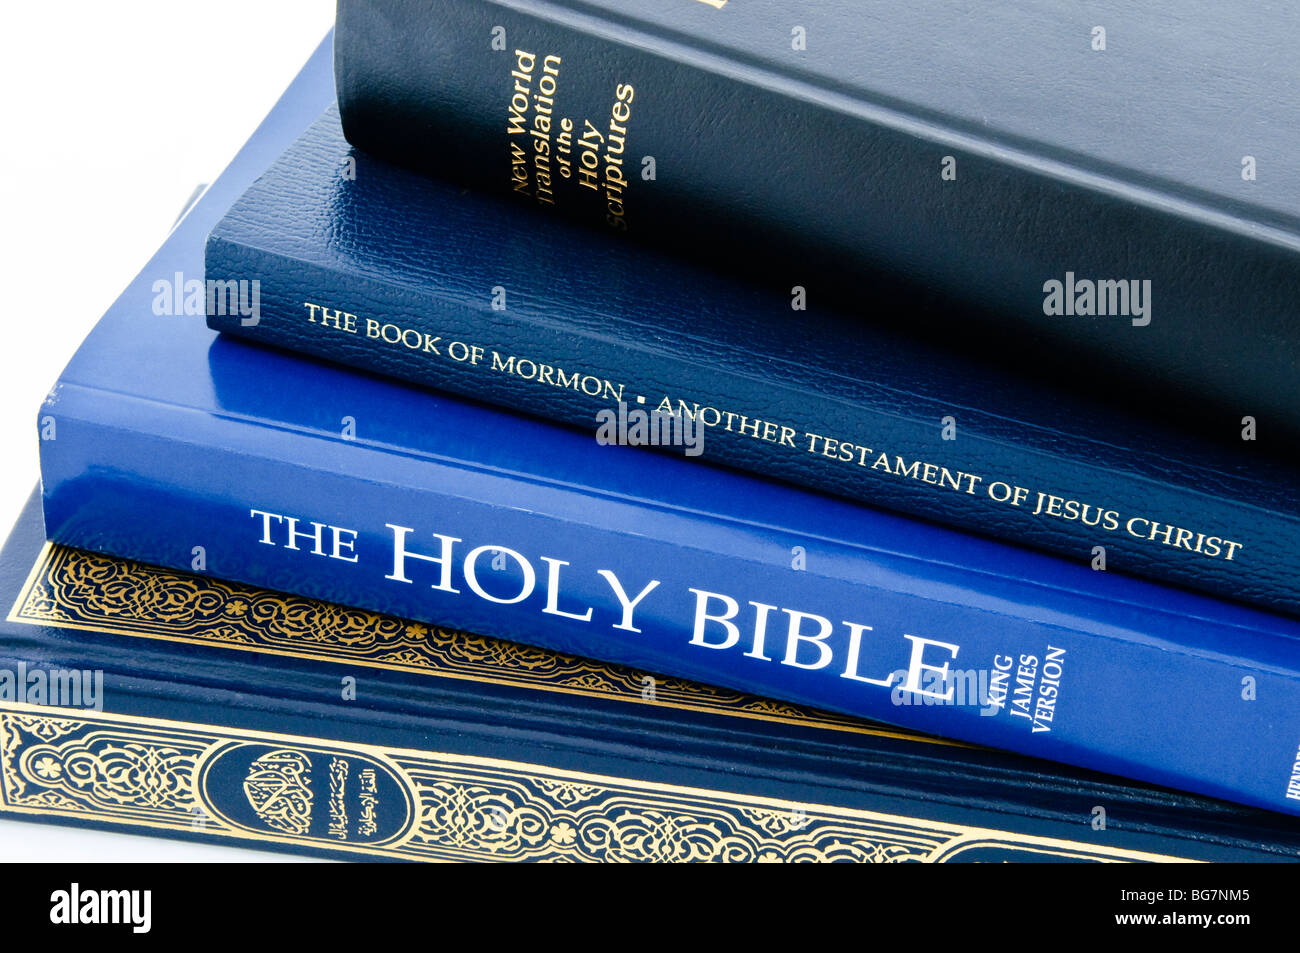 Stack of holy books - New World Translation of the Holy Scriptures, Book of Mormon, Holy Bible and the Qu'ran - Stock Image